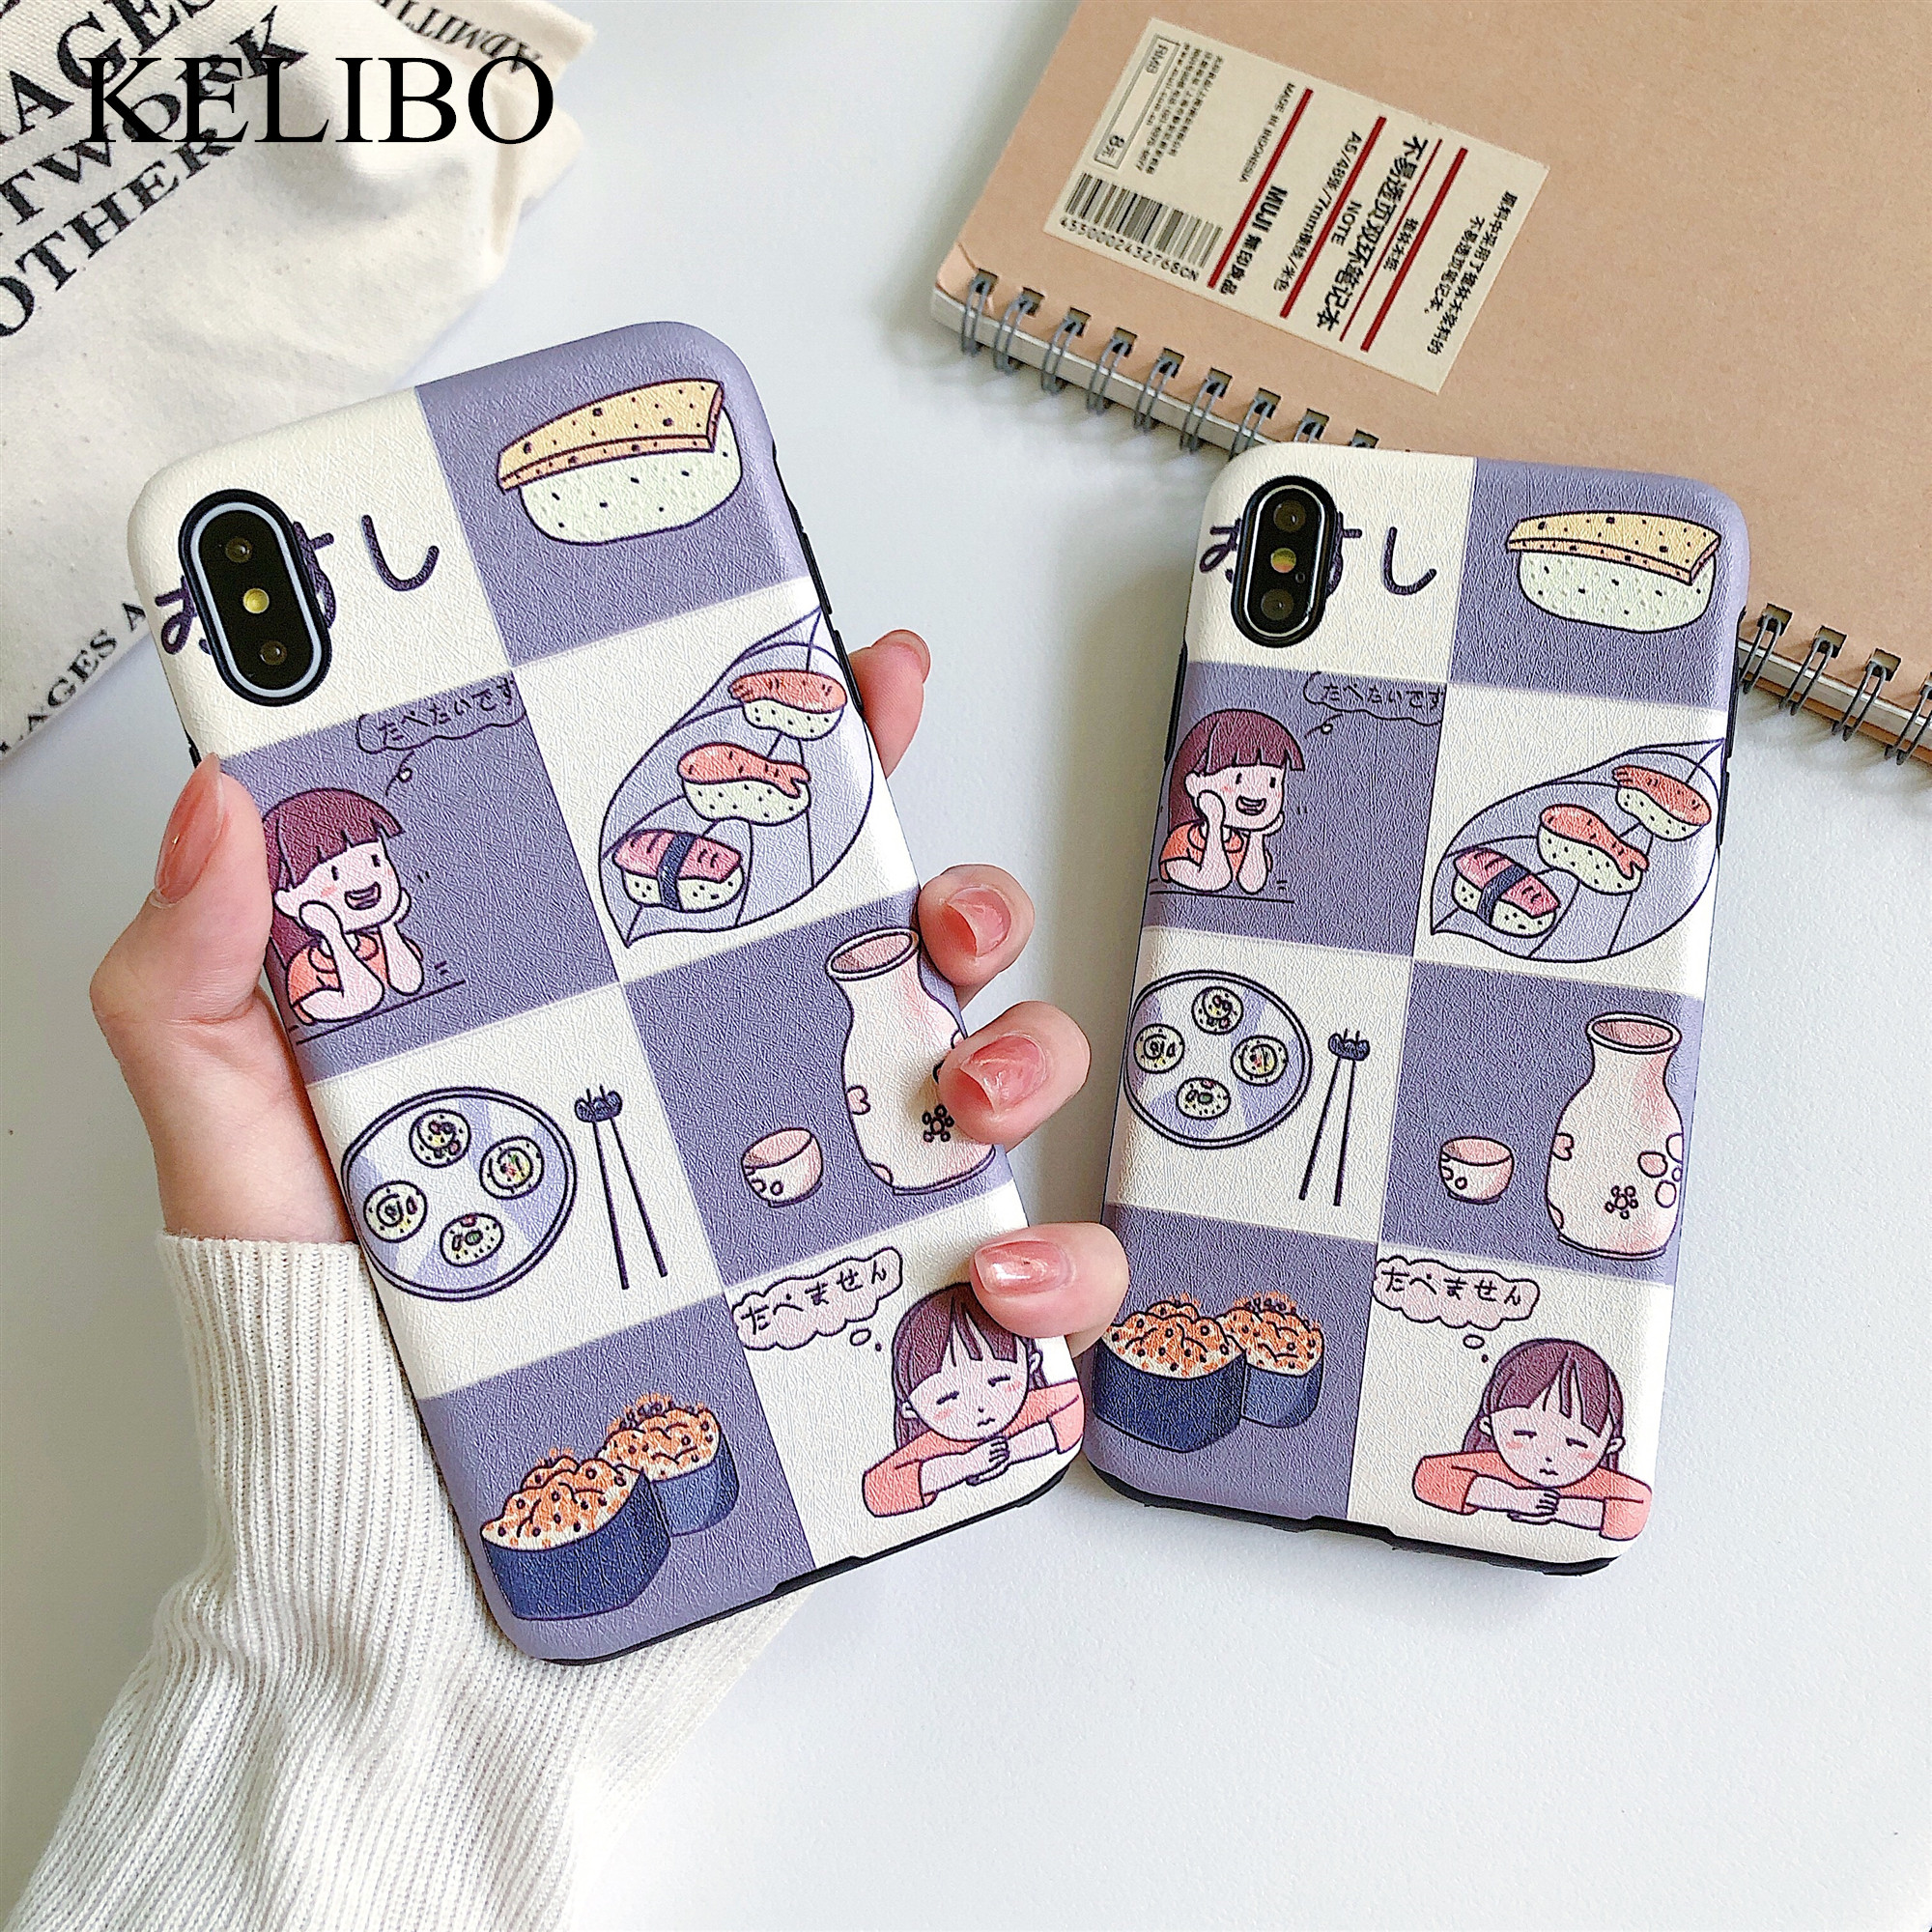 Kawaii Japanese anime illustration <font><b>Phone</b></font> Cases For iphone X XS Max XR Case <font><b>bts</b></font> Relief <font><b>Cover</b></font> For iPhone 6 6s 7 8 Plus Fundas Capa image